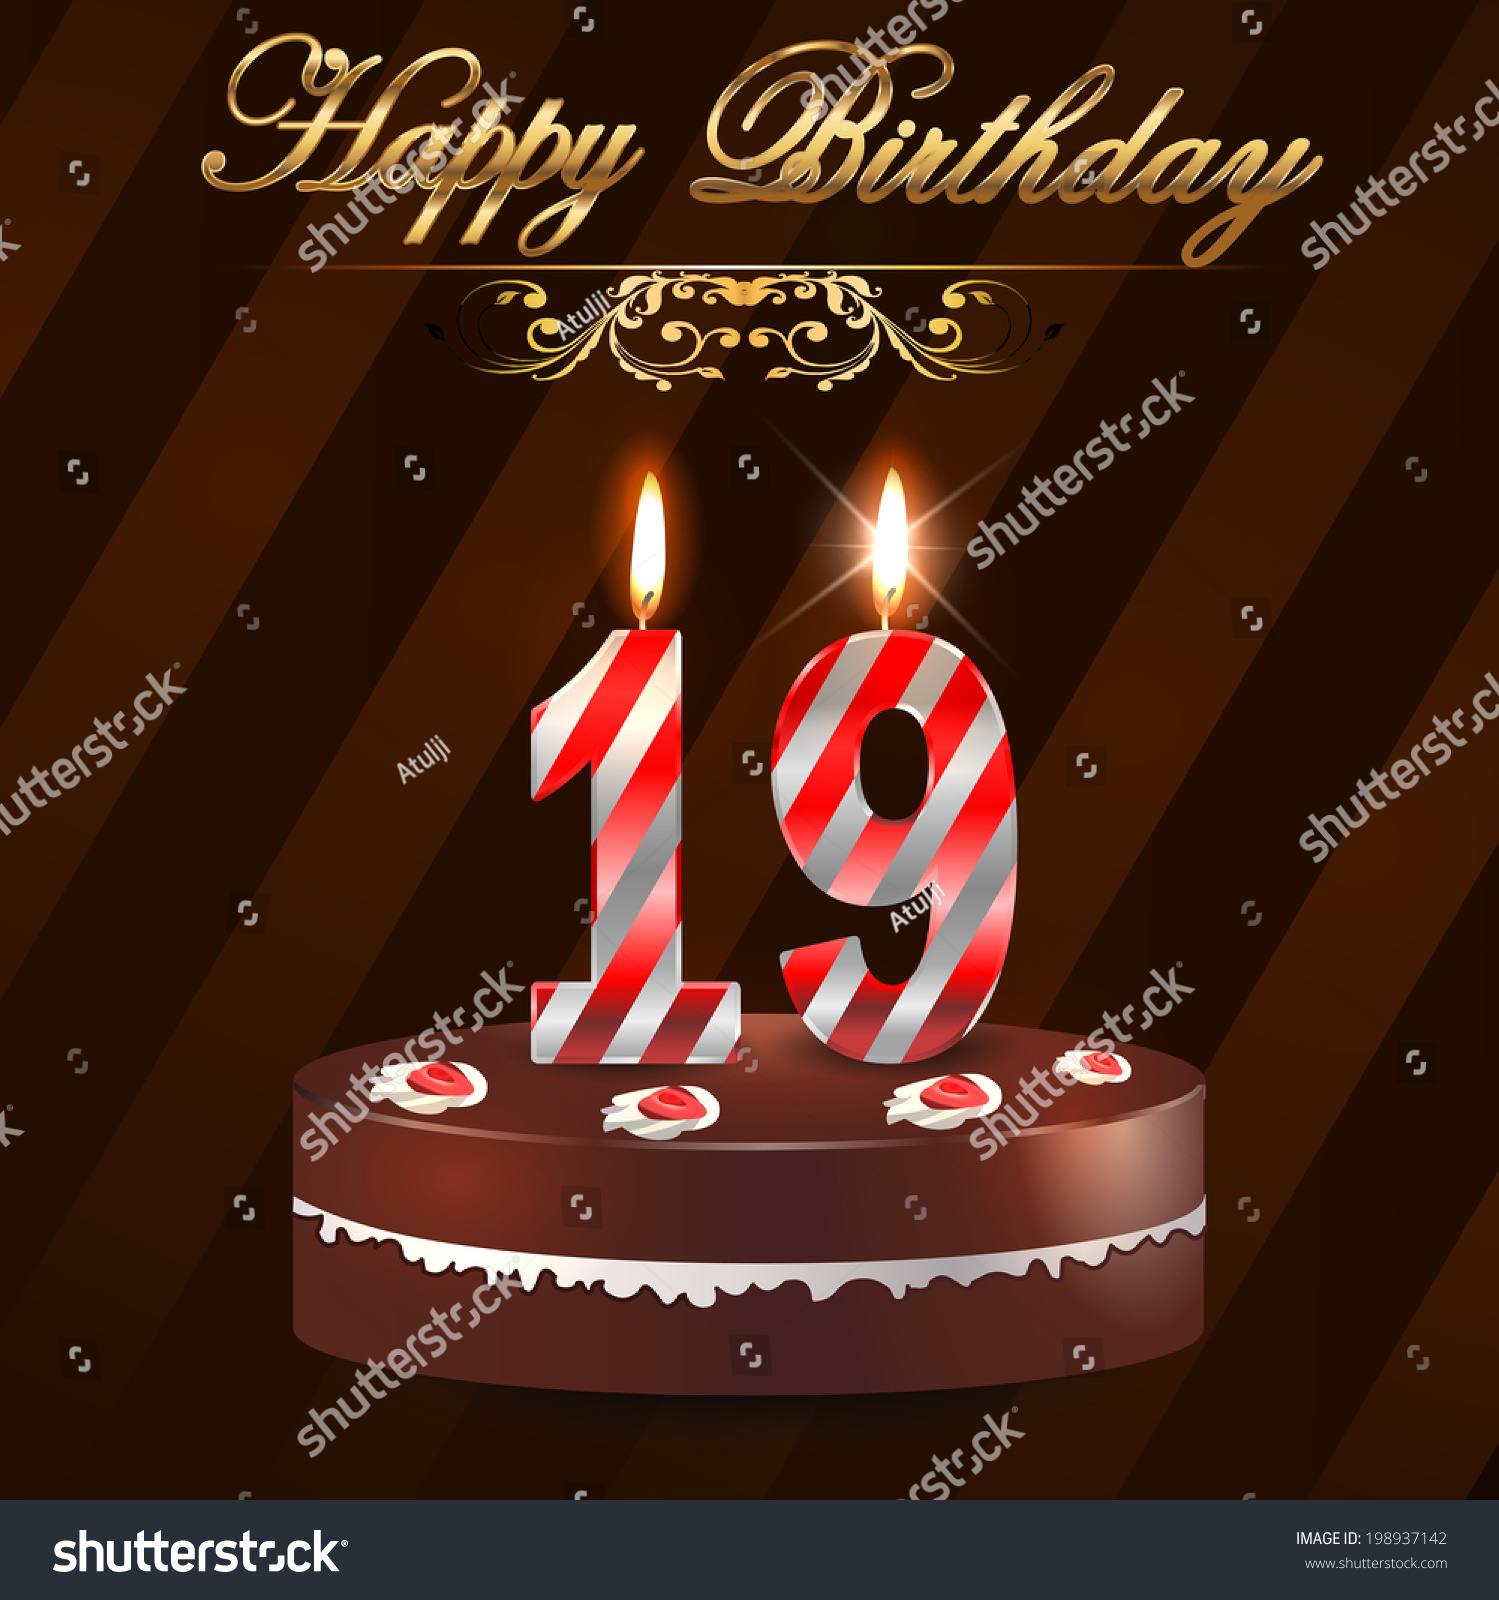 Royaltyfree 19 year Happy Birthday Card with cake 198937142 – 19 Birthday Cards